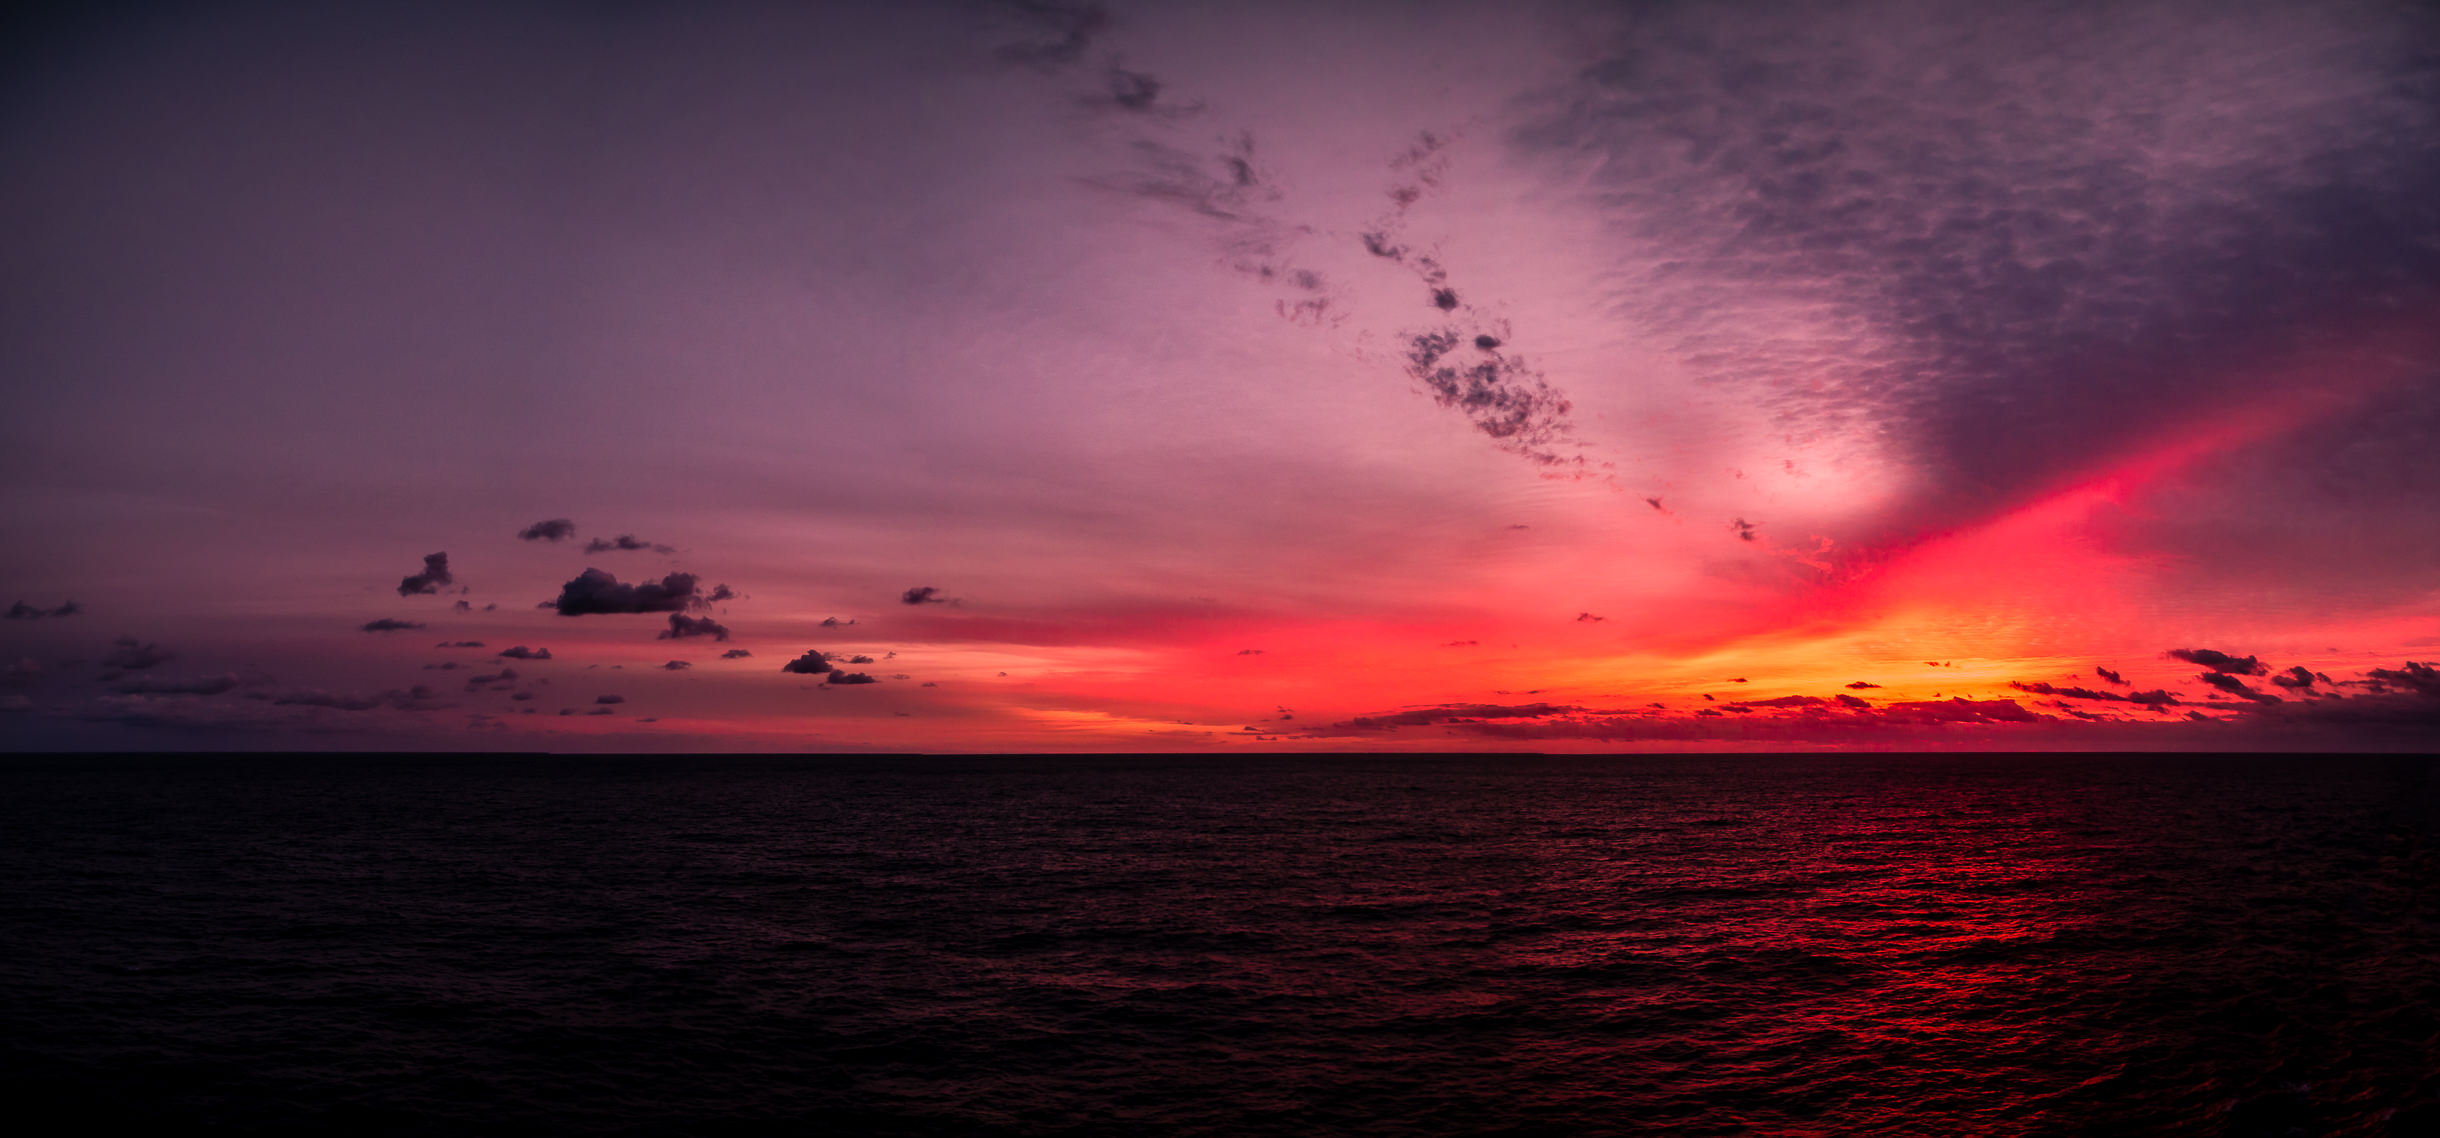 The sun rises to begin a new day on the Gulf of Mexico, roughly midway between the Yucatán Peninsula and the Texas Coast.